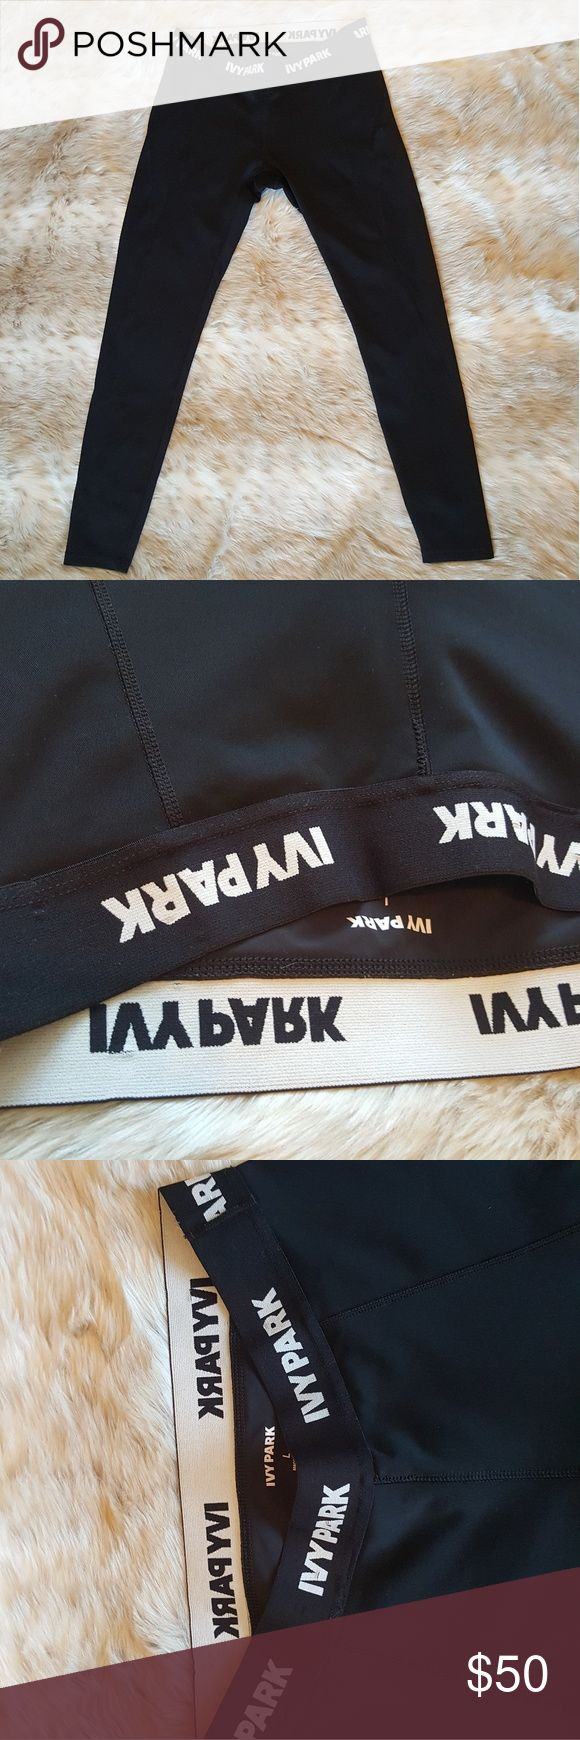 Ivy Park Logo Athletic Leggings This listing is for a pair of Ivy Park ankle-length leggings. They do have an elastic waistband with the logo written around the waist.  These have not been worn but do not have original tags.  Measurements: (taken while garment is laying flat) Length - 35 inches Waist - 13 inches  Happy Shopping! Ivy Park Pants Leggings